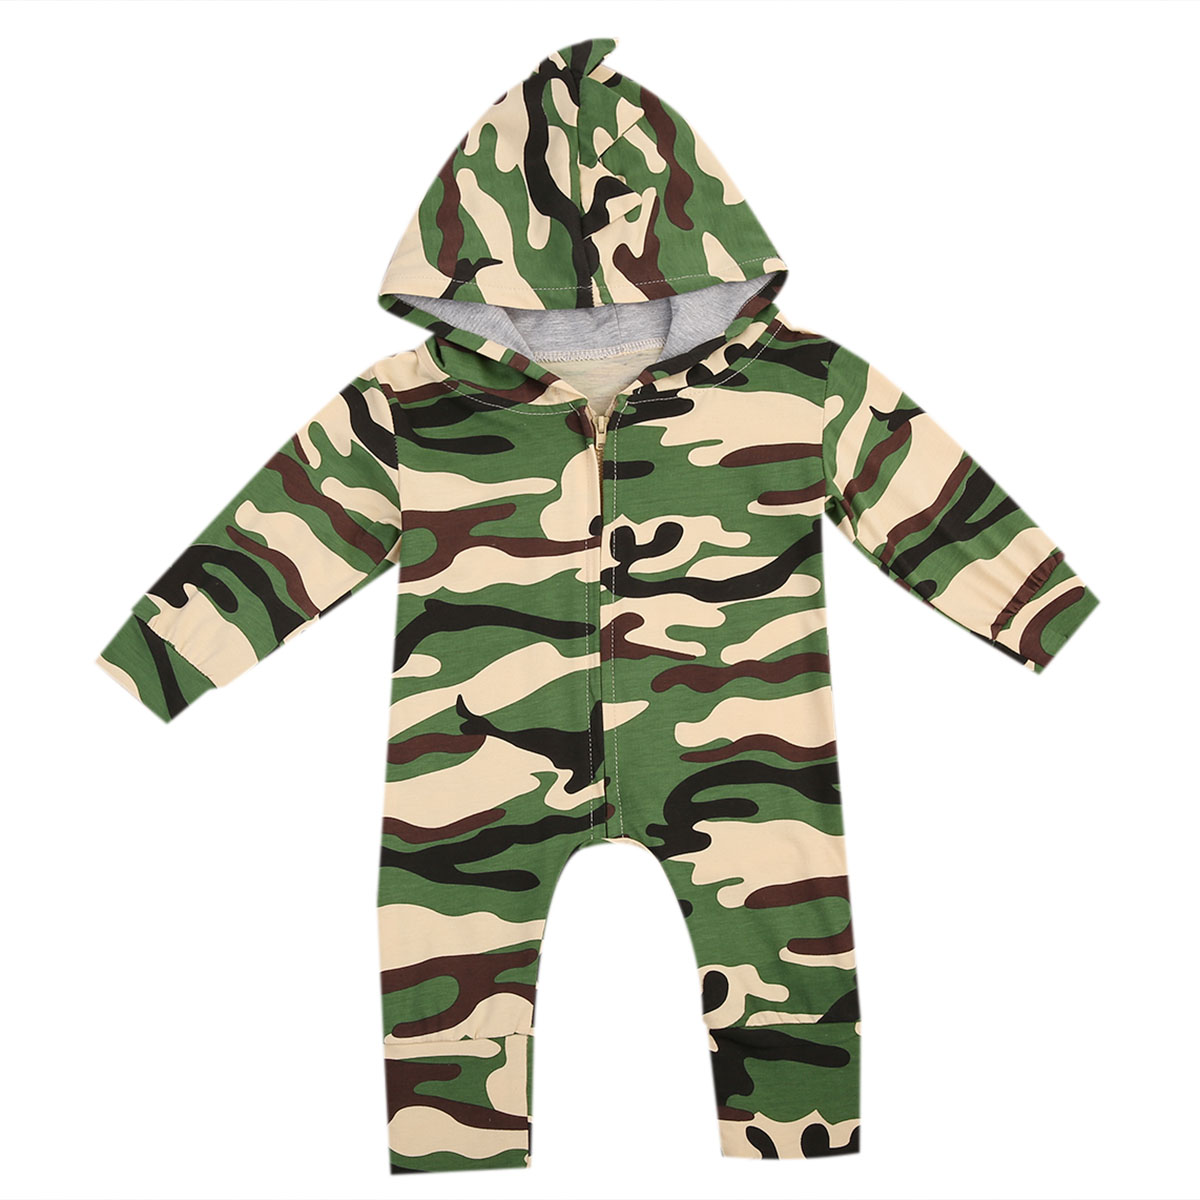 Newborn Kids Baby Boy Girl Infant Cotton Romper Jumpsuit Long Sleeve Cotton Cute Army Green Outfit Clothes newborn infant baby boy girl cotton romper jumpsuit boys girl angel wings long sleeve rompers white gray autumn clothes outfit